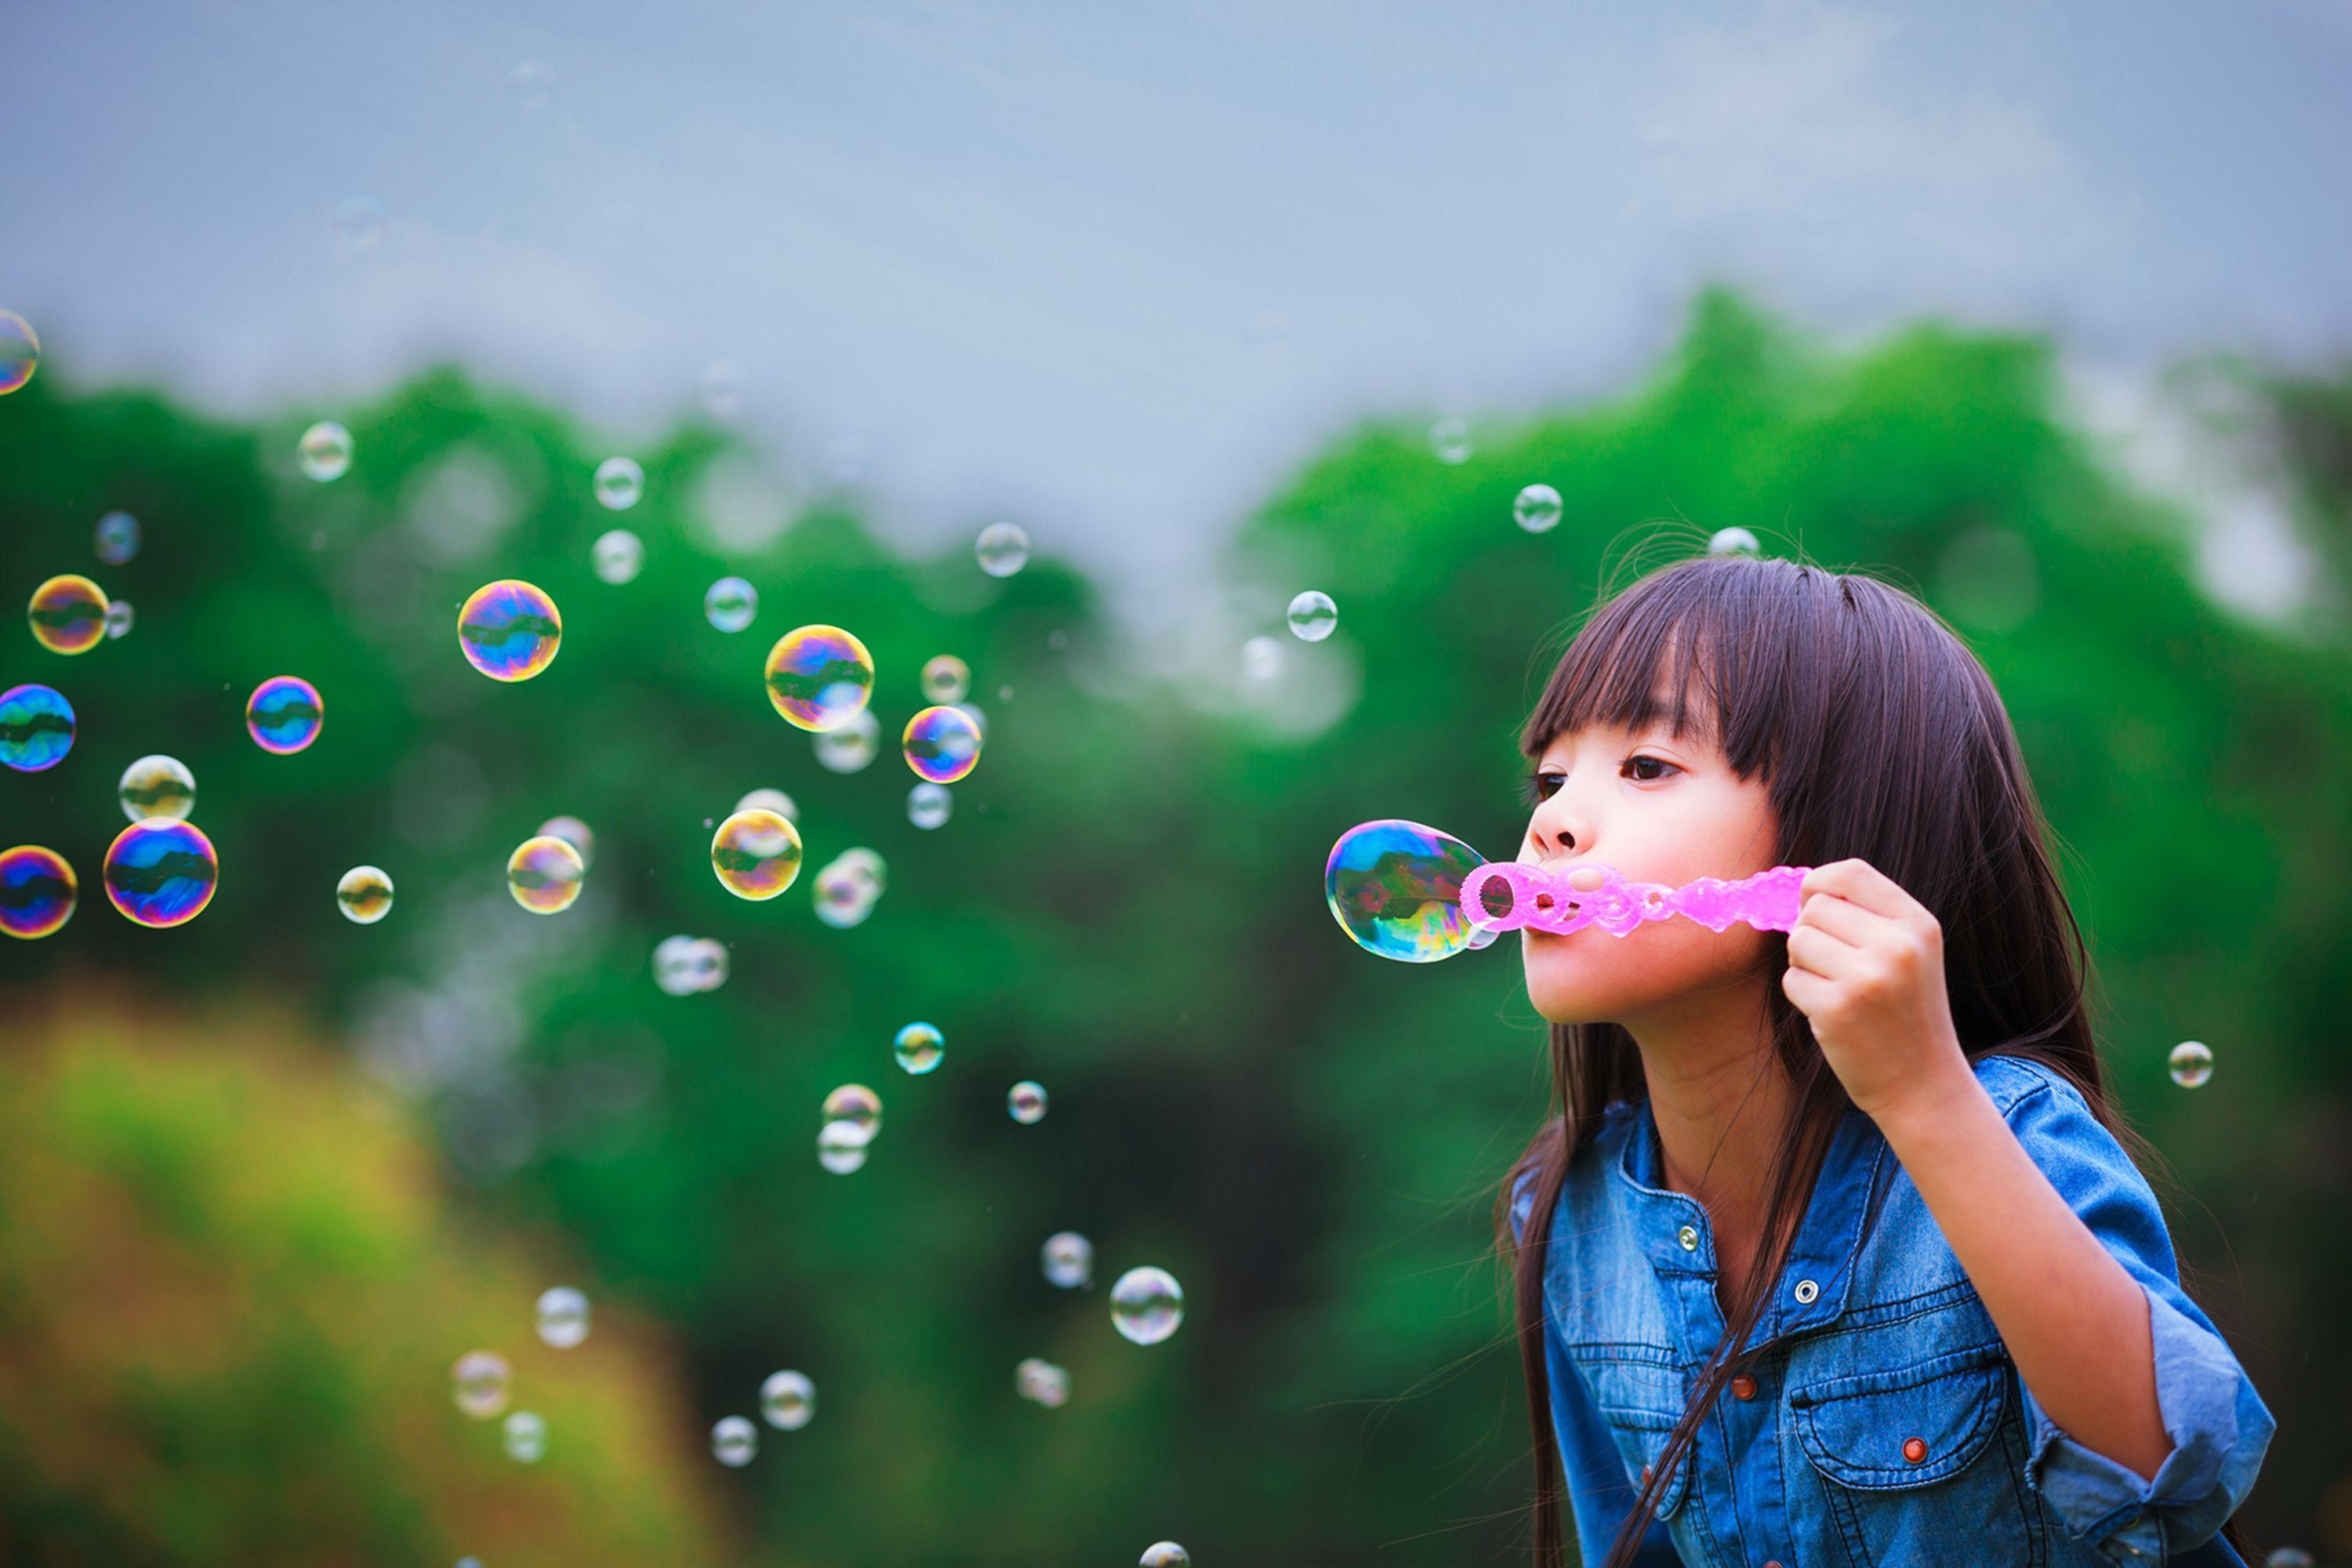 Child Girl Blowing Bubbles wallpaper thumb